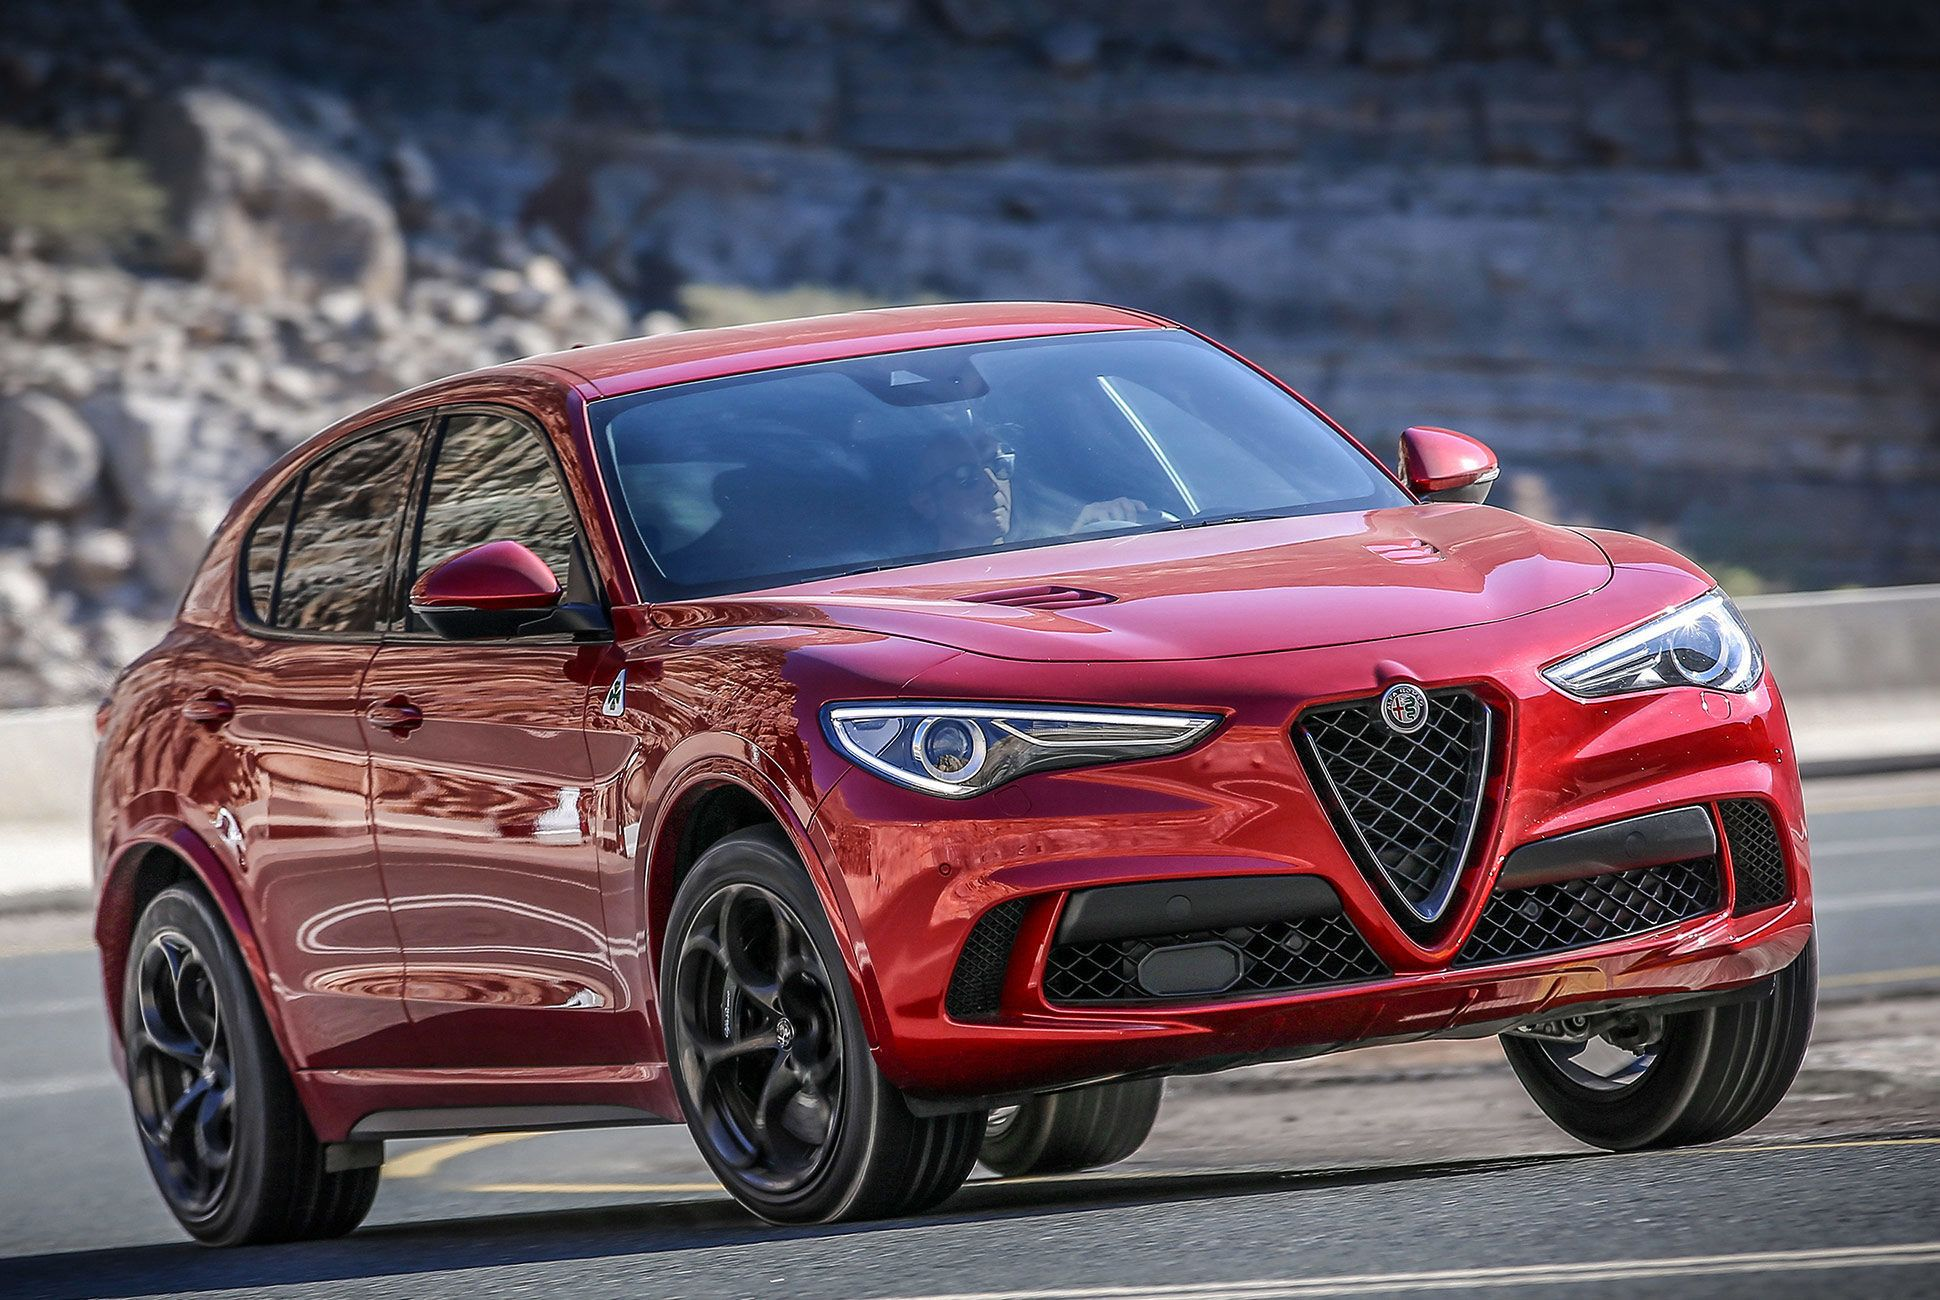 The 2019 Alfa Romeo Giulia And Stelvio Quadrifoglio Offer Ferrari Performance For Audi Money Alfa Romeo Stelvio Alfa Romeo Romeo